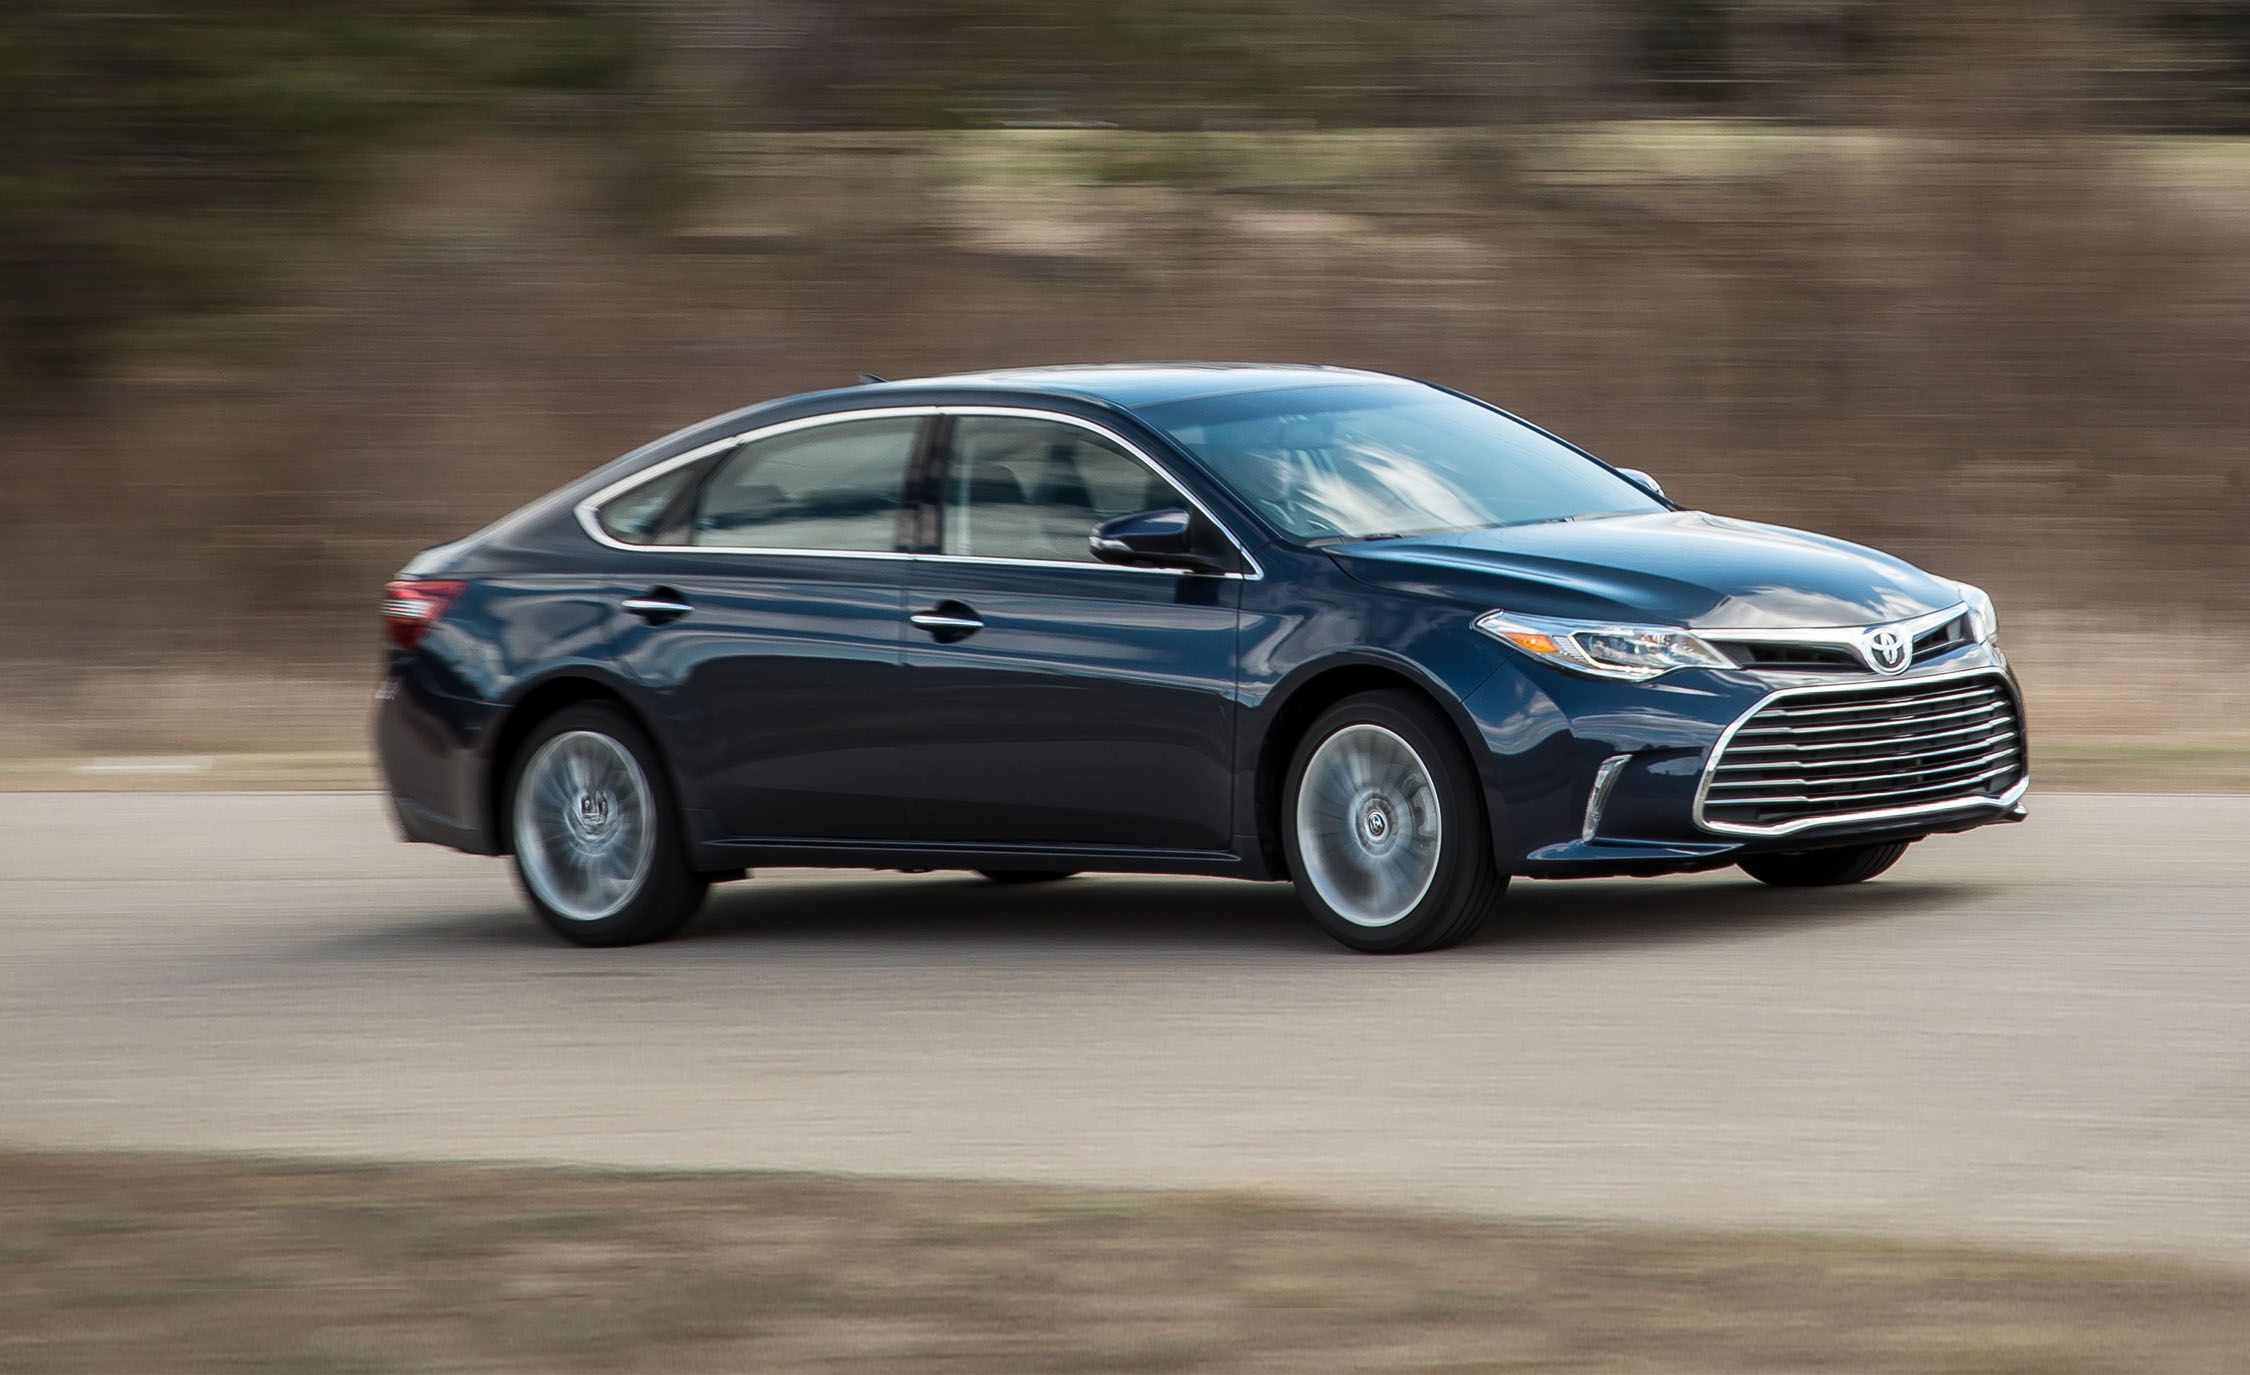 2018 toyota avalon in depth model review car and driver rh caranddriver com 2000 Toyota Avalon toyota avalon 2001 car manual